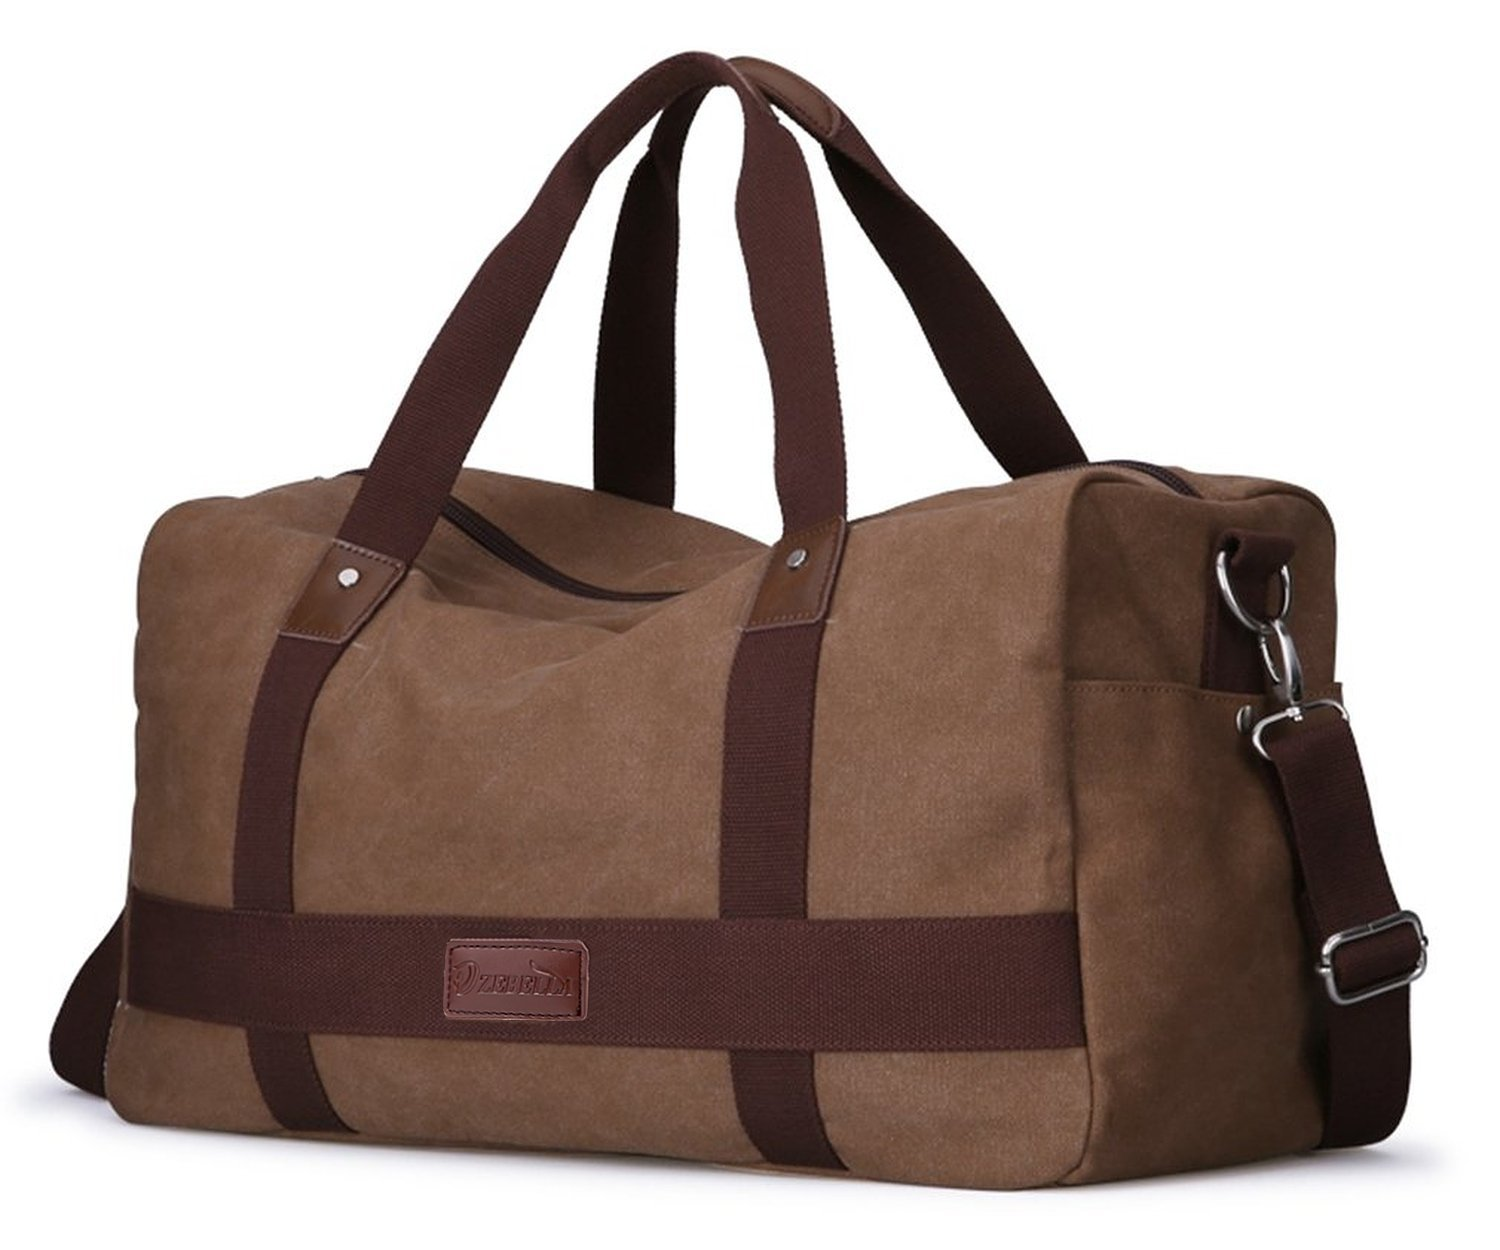 ZEBELLA Unisex Canvas Large Travel Duffel Tote Sports Gym Bag Overnight Handbag